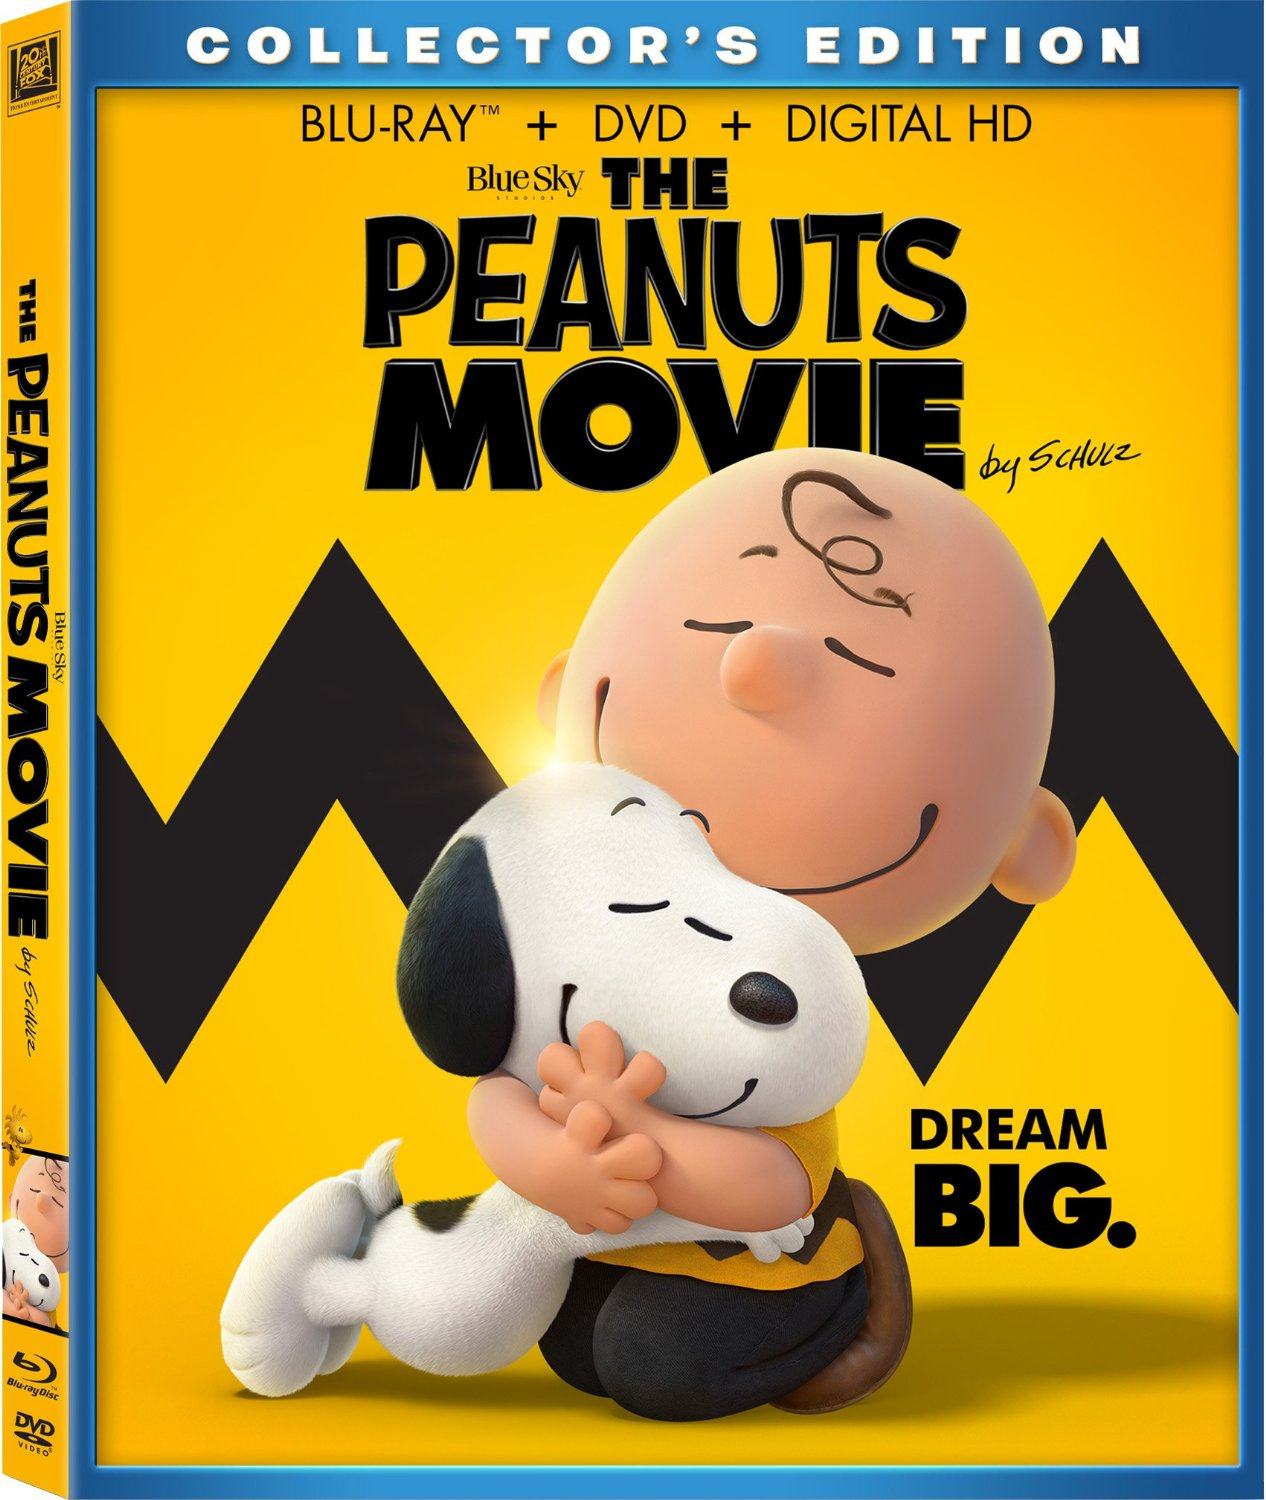 The Peanuts Movie on Blu-Ray and DVD